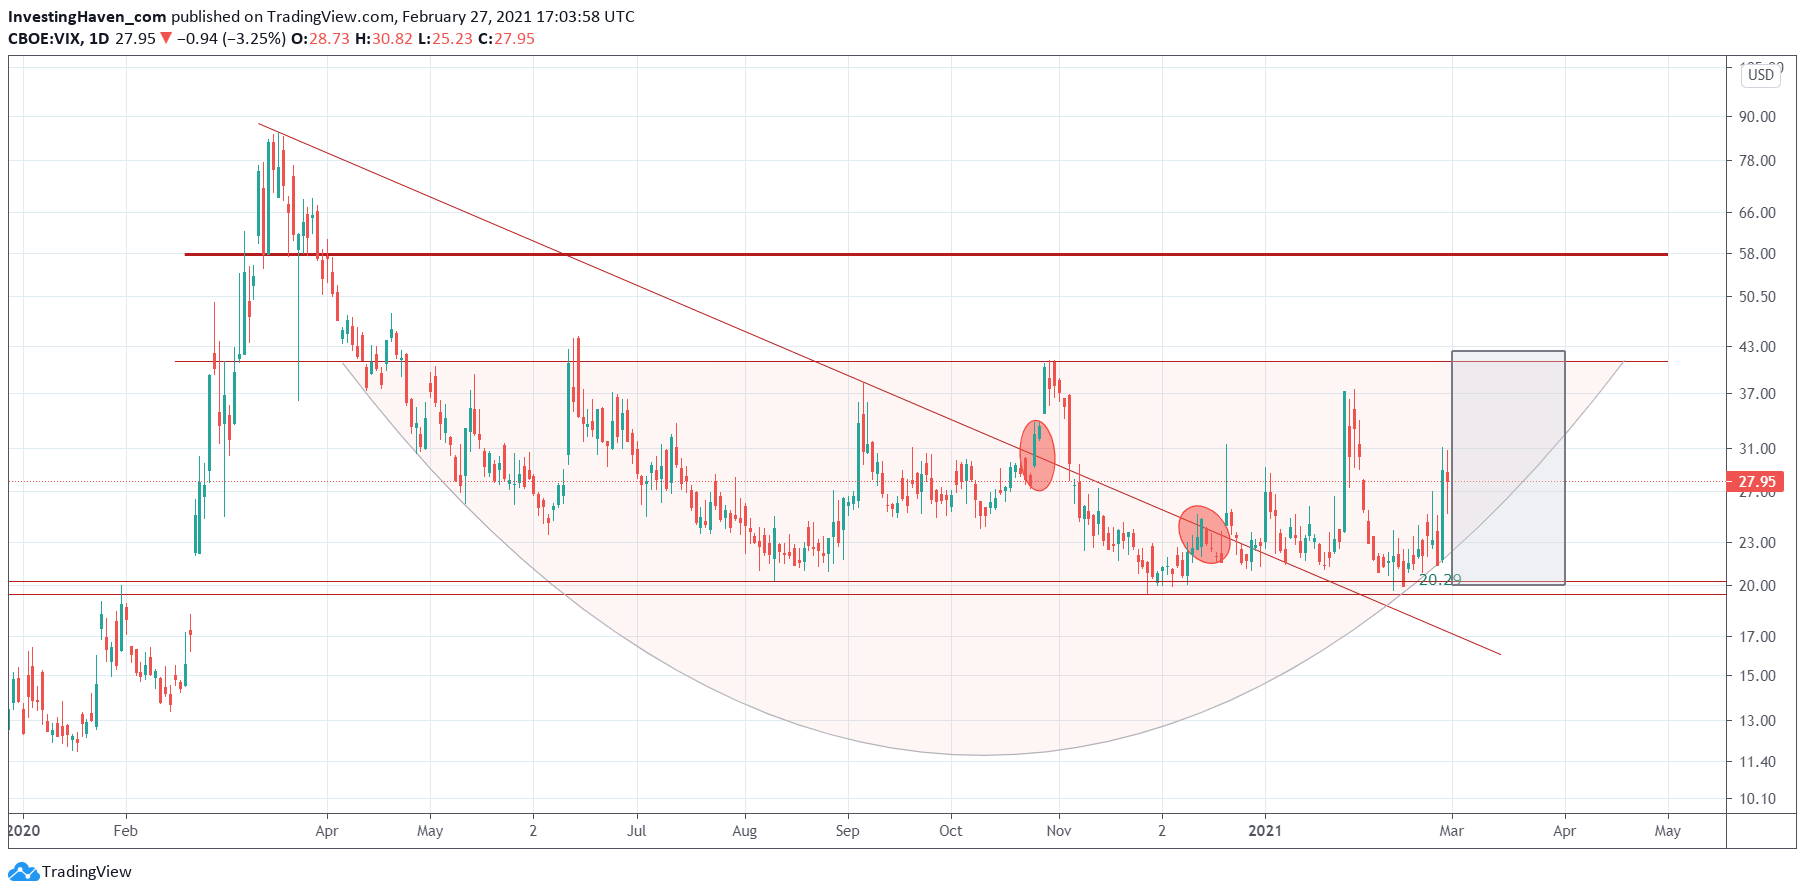 VIX crash indicator